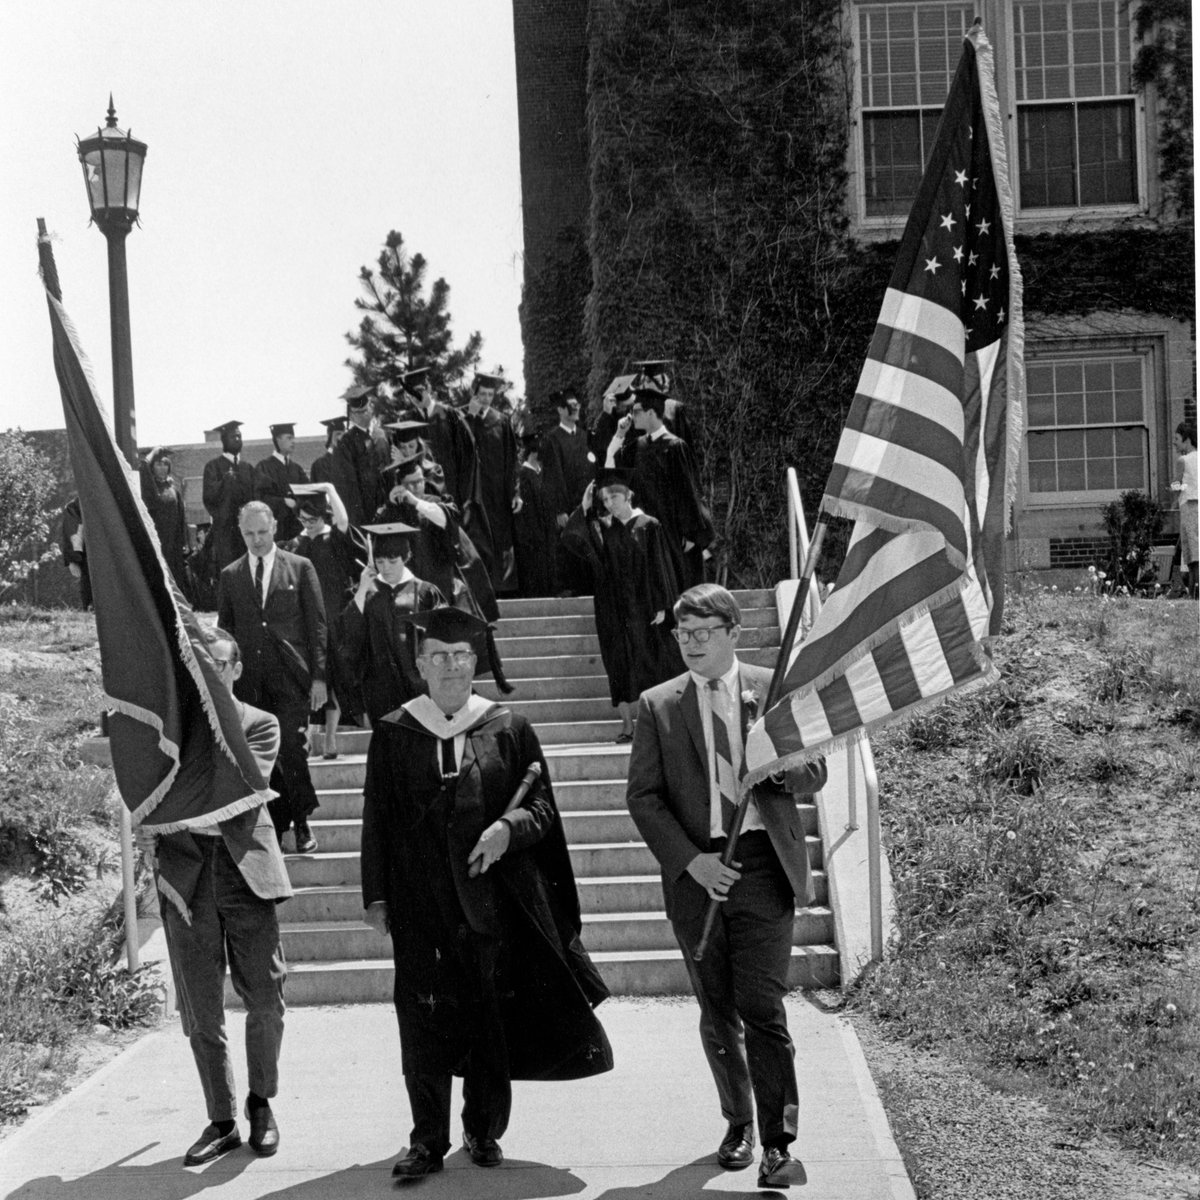 Remembering past commencements at #geneseo https://t.co/ZKBLSoTtxv